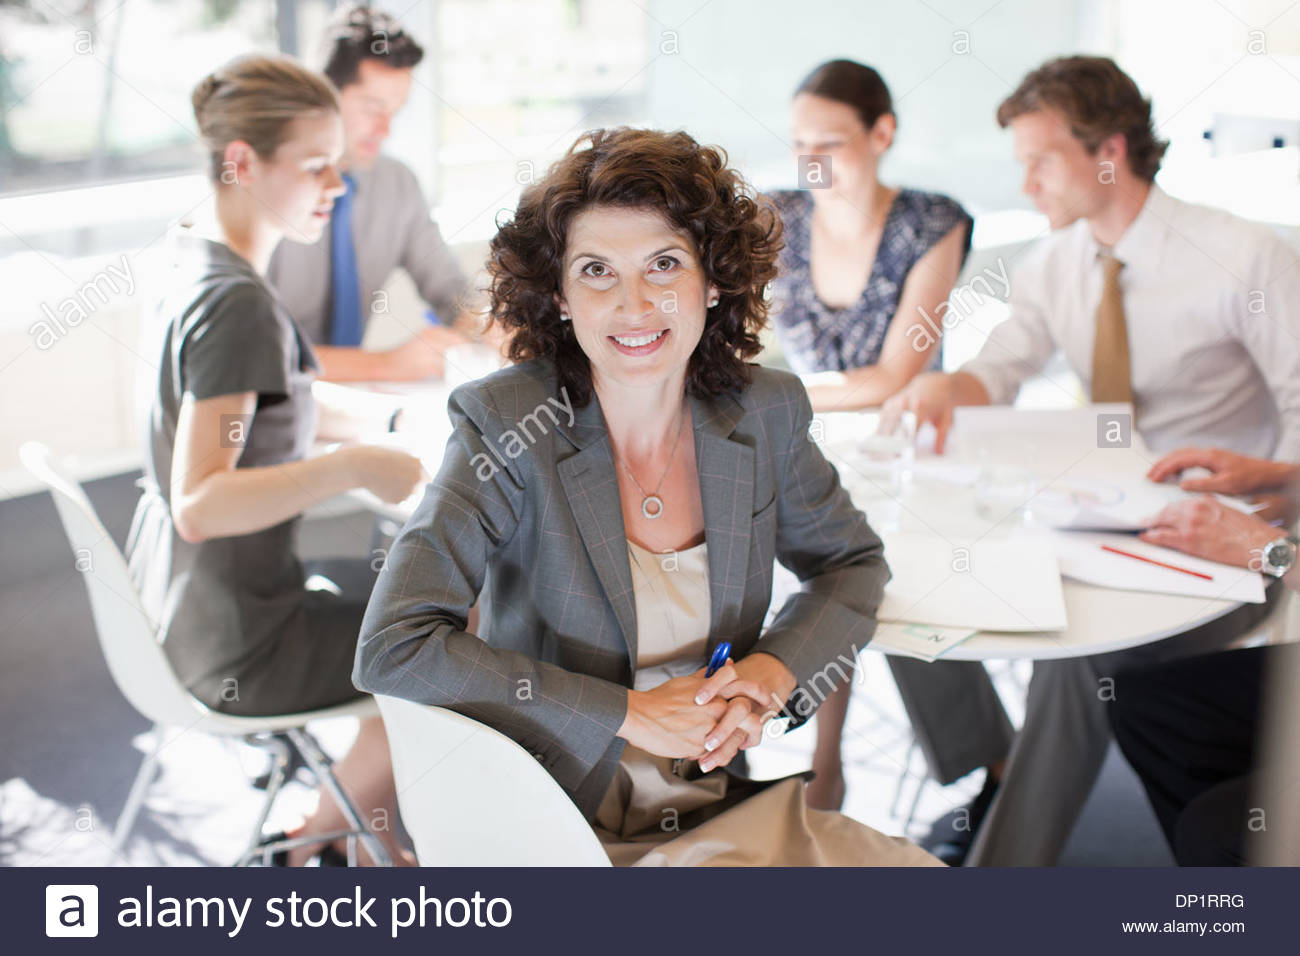 Businesswoman and co-workers meeting at conference table - Stock Image